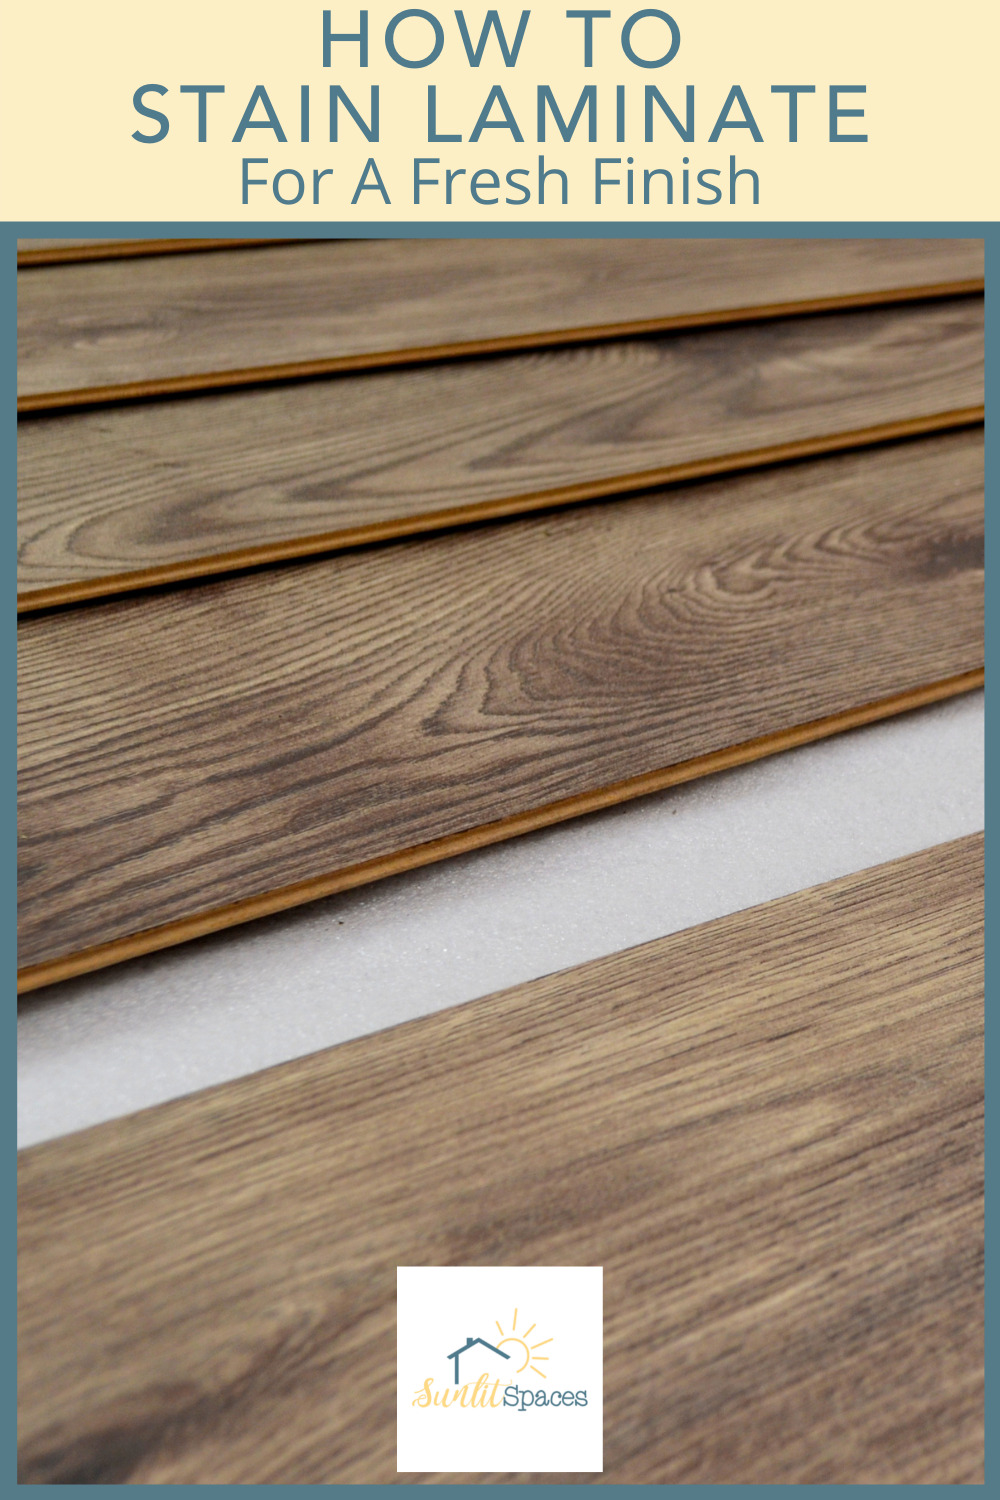 Sunlitspaces.com has all you need to know to create a perfect, personalized space. Know the best techniques for giving old furniture new life. Learn how you can stain laminate surfaces with these easy tips!